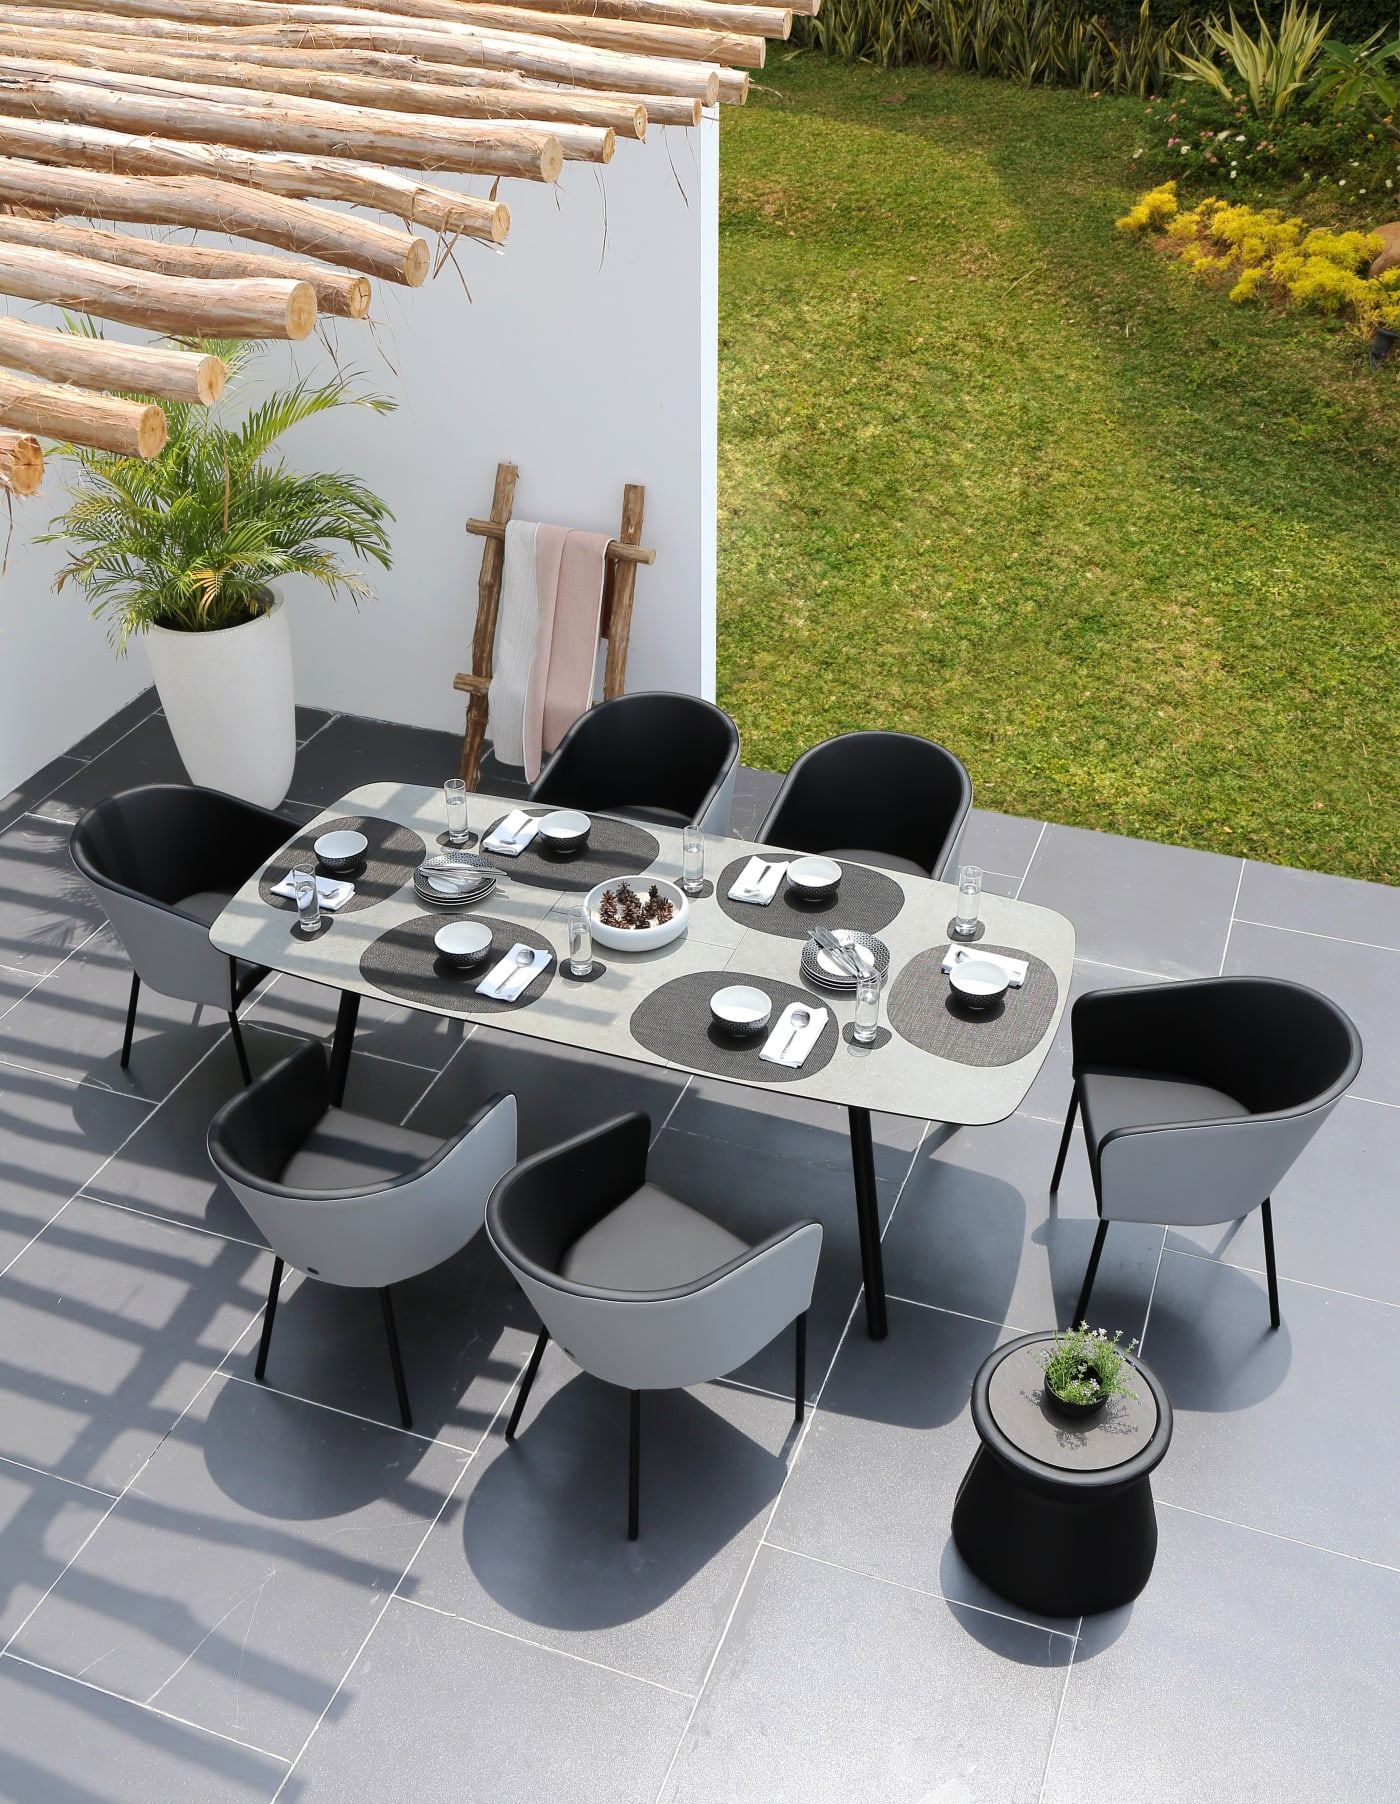 Zupy Extension Dining Table 244-295cm - Teak